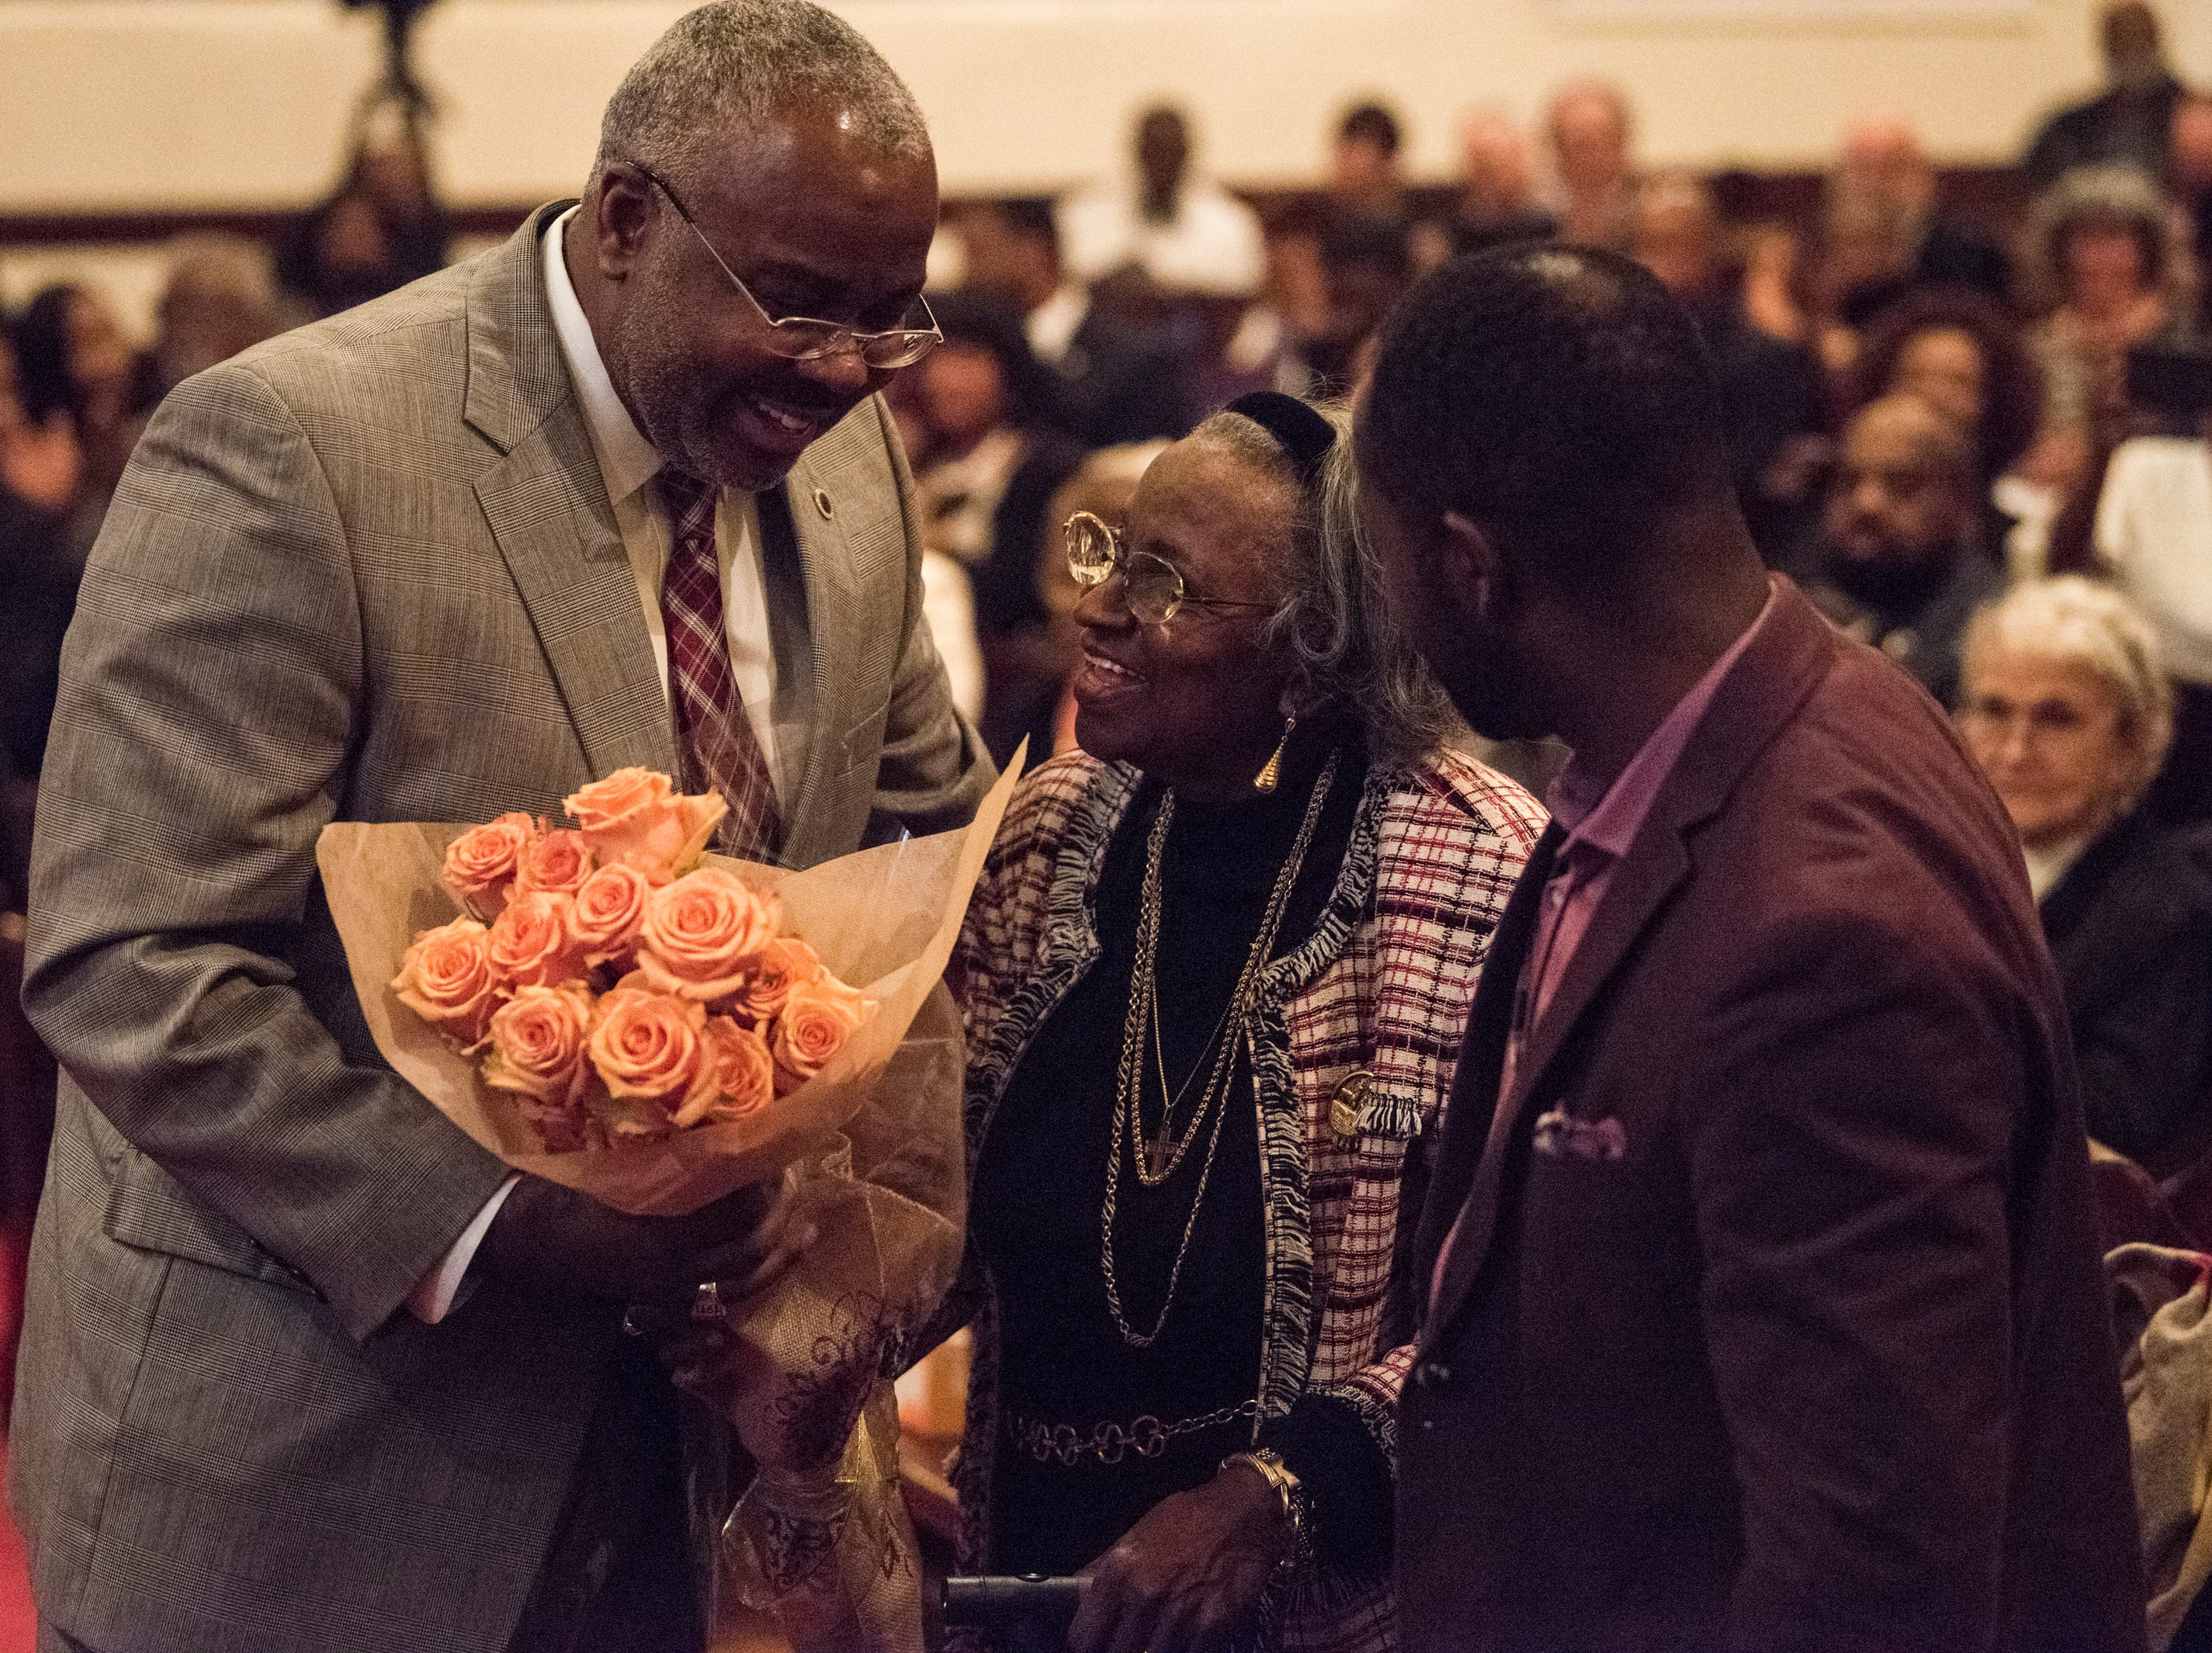 Alabama State University President Quinton Ross honors Juanita Abernathy during 63rd anniversary of the Montgomery bus boycott ceremony at First Baptist Church in Montgomery, Ala., on Monday, Dec. 3, 2018.